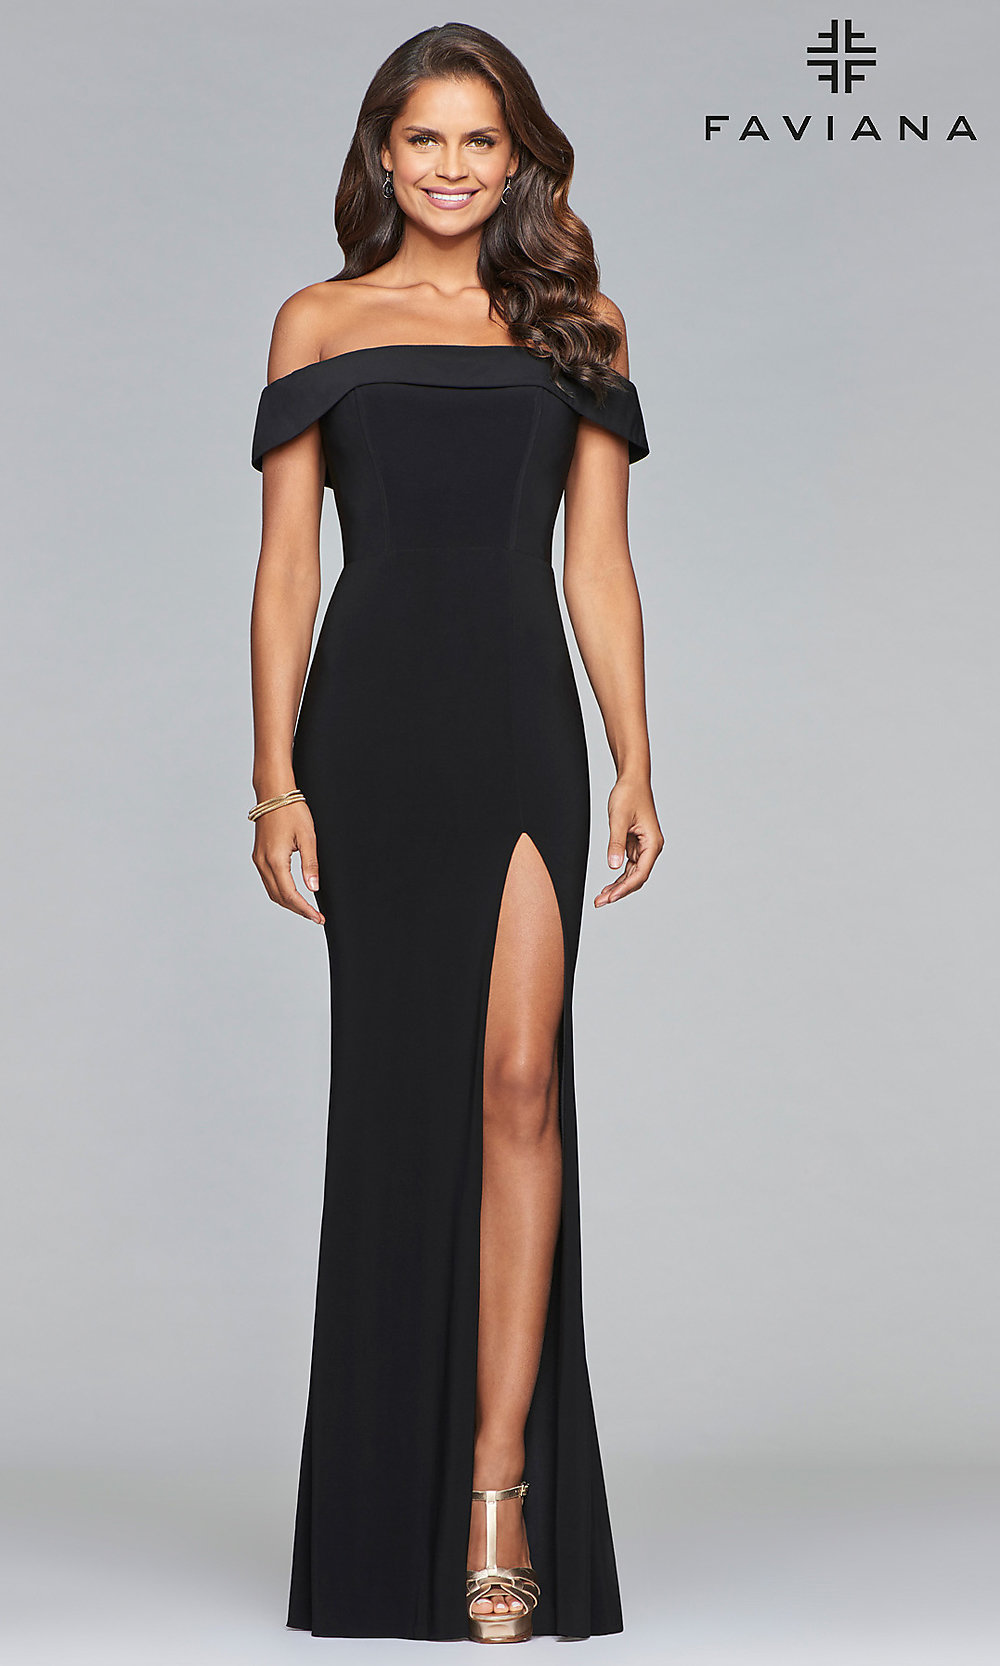 cb4e7d309b1 Off-the-Shoulder Faviana Long Prom Dress - PromGirl